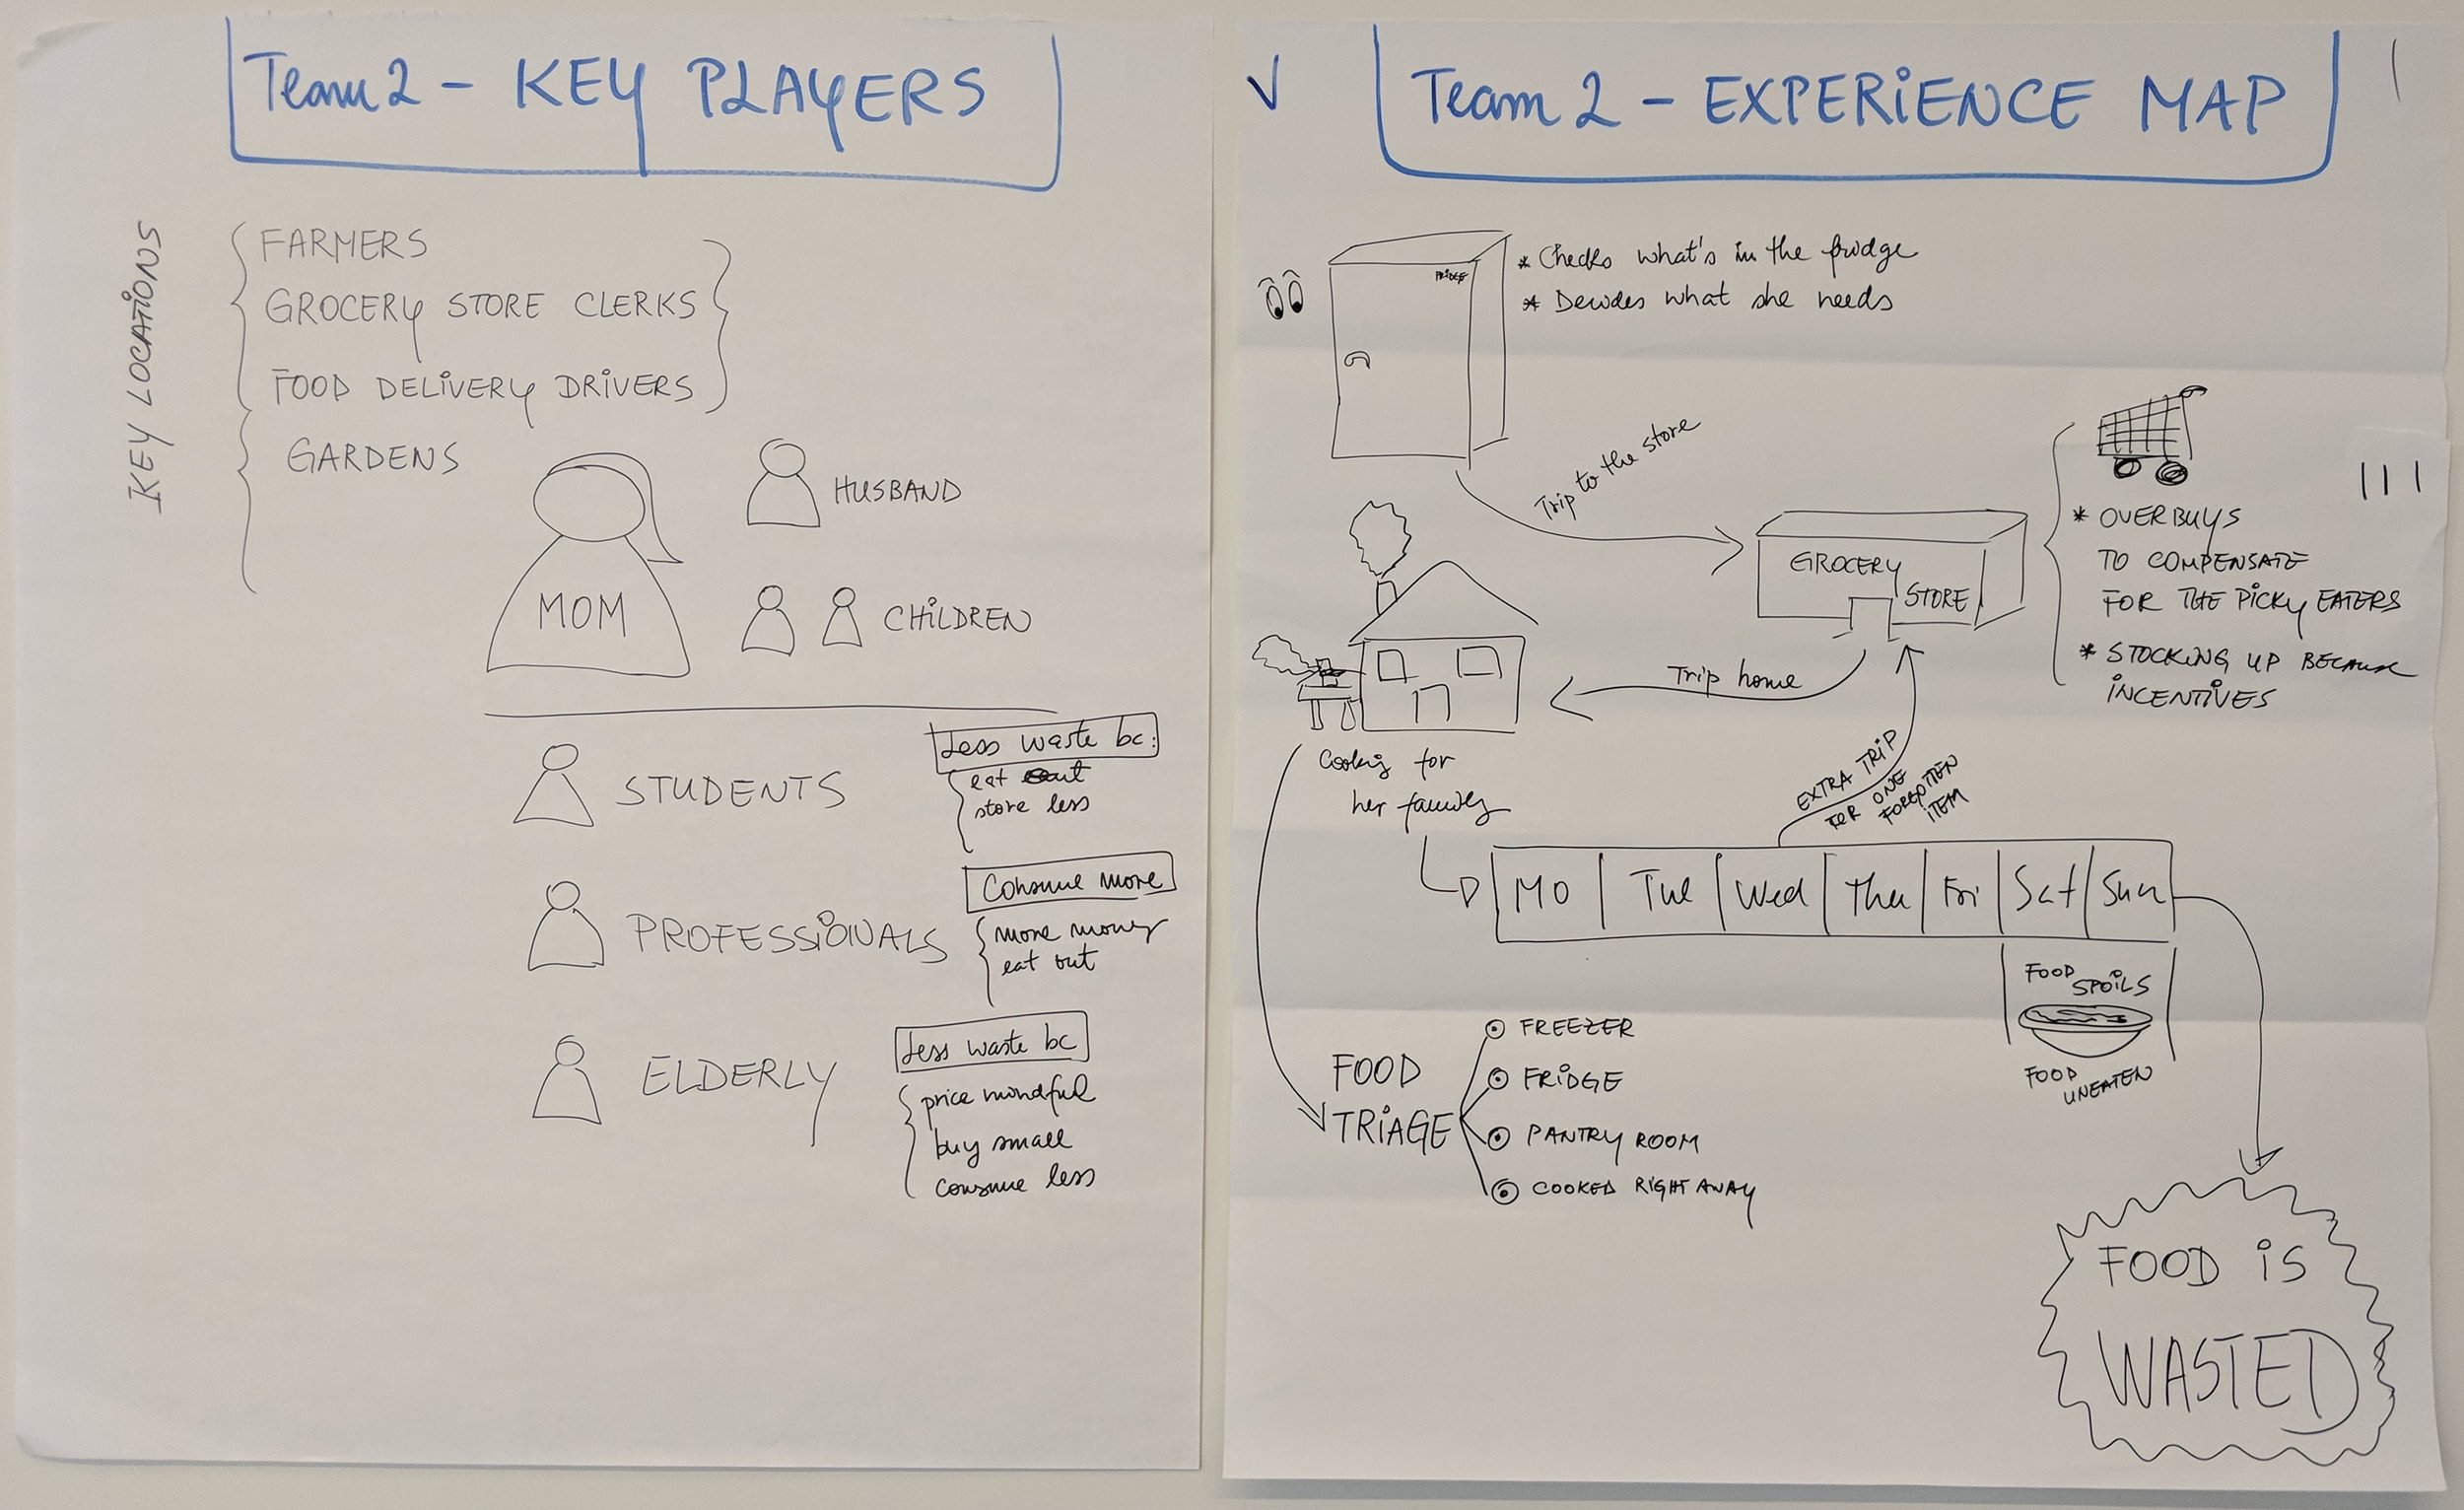 Identifying key players and mapping their journey.